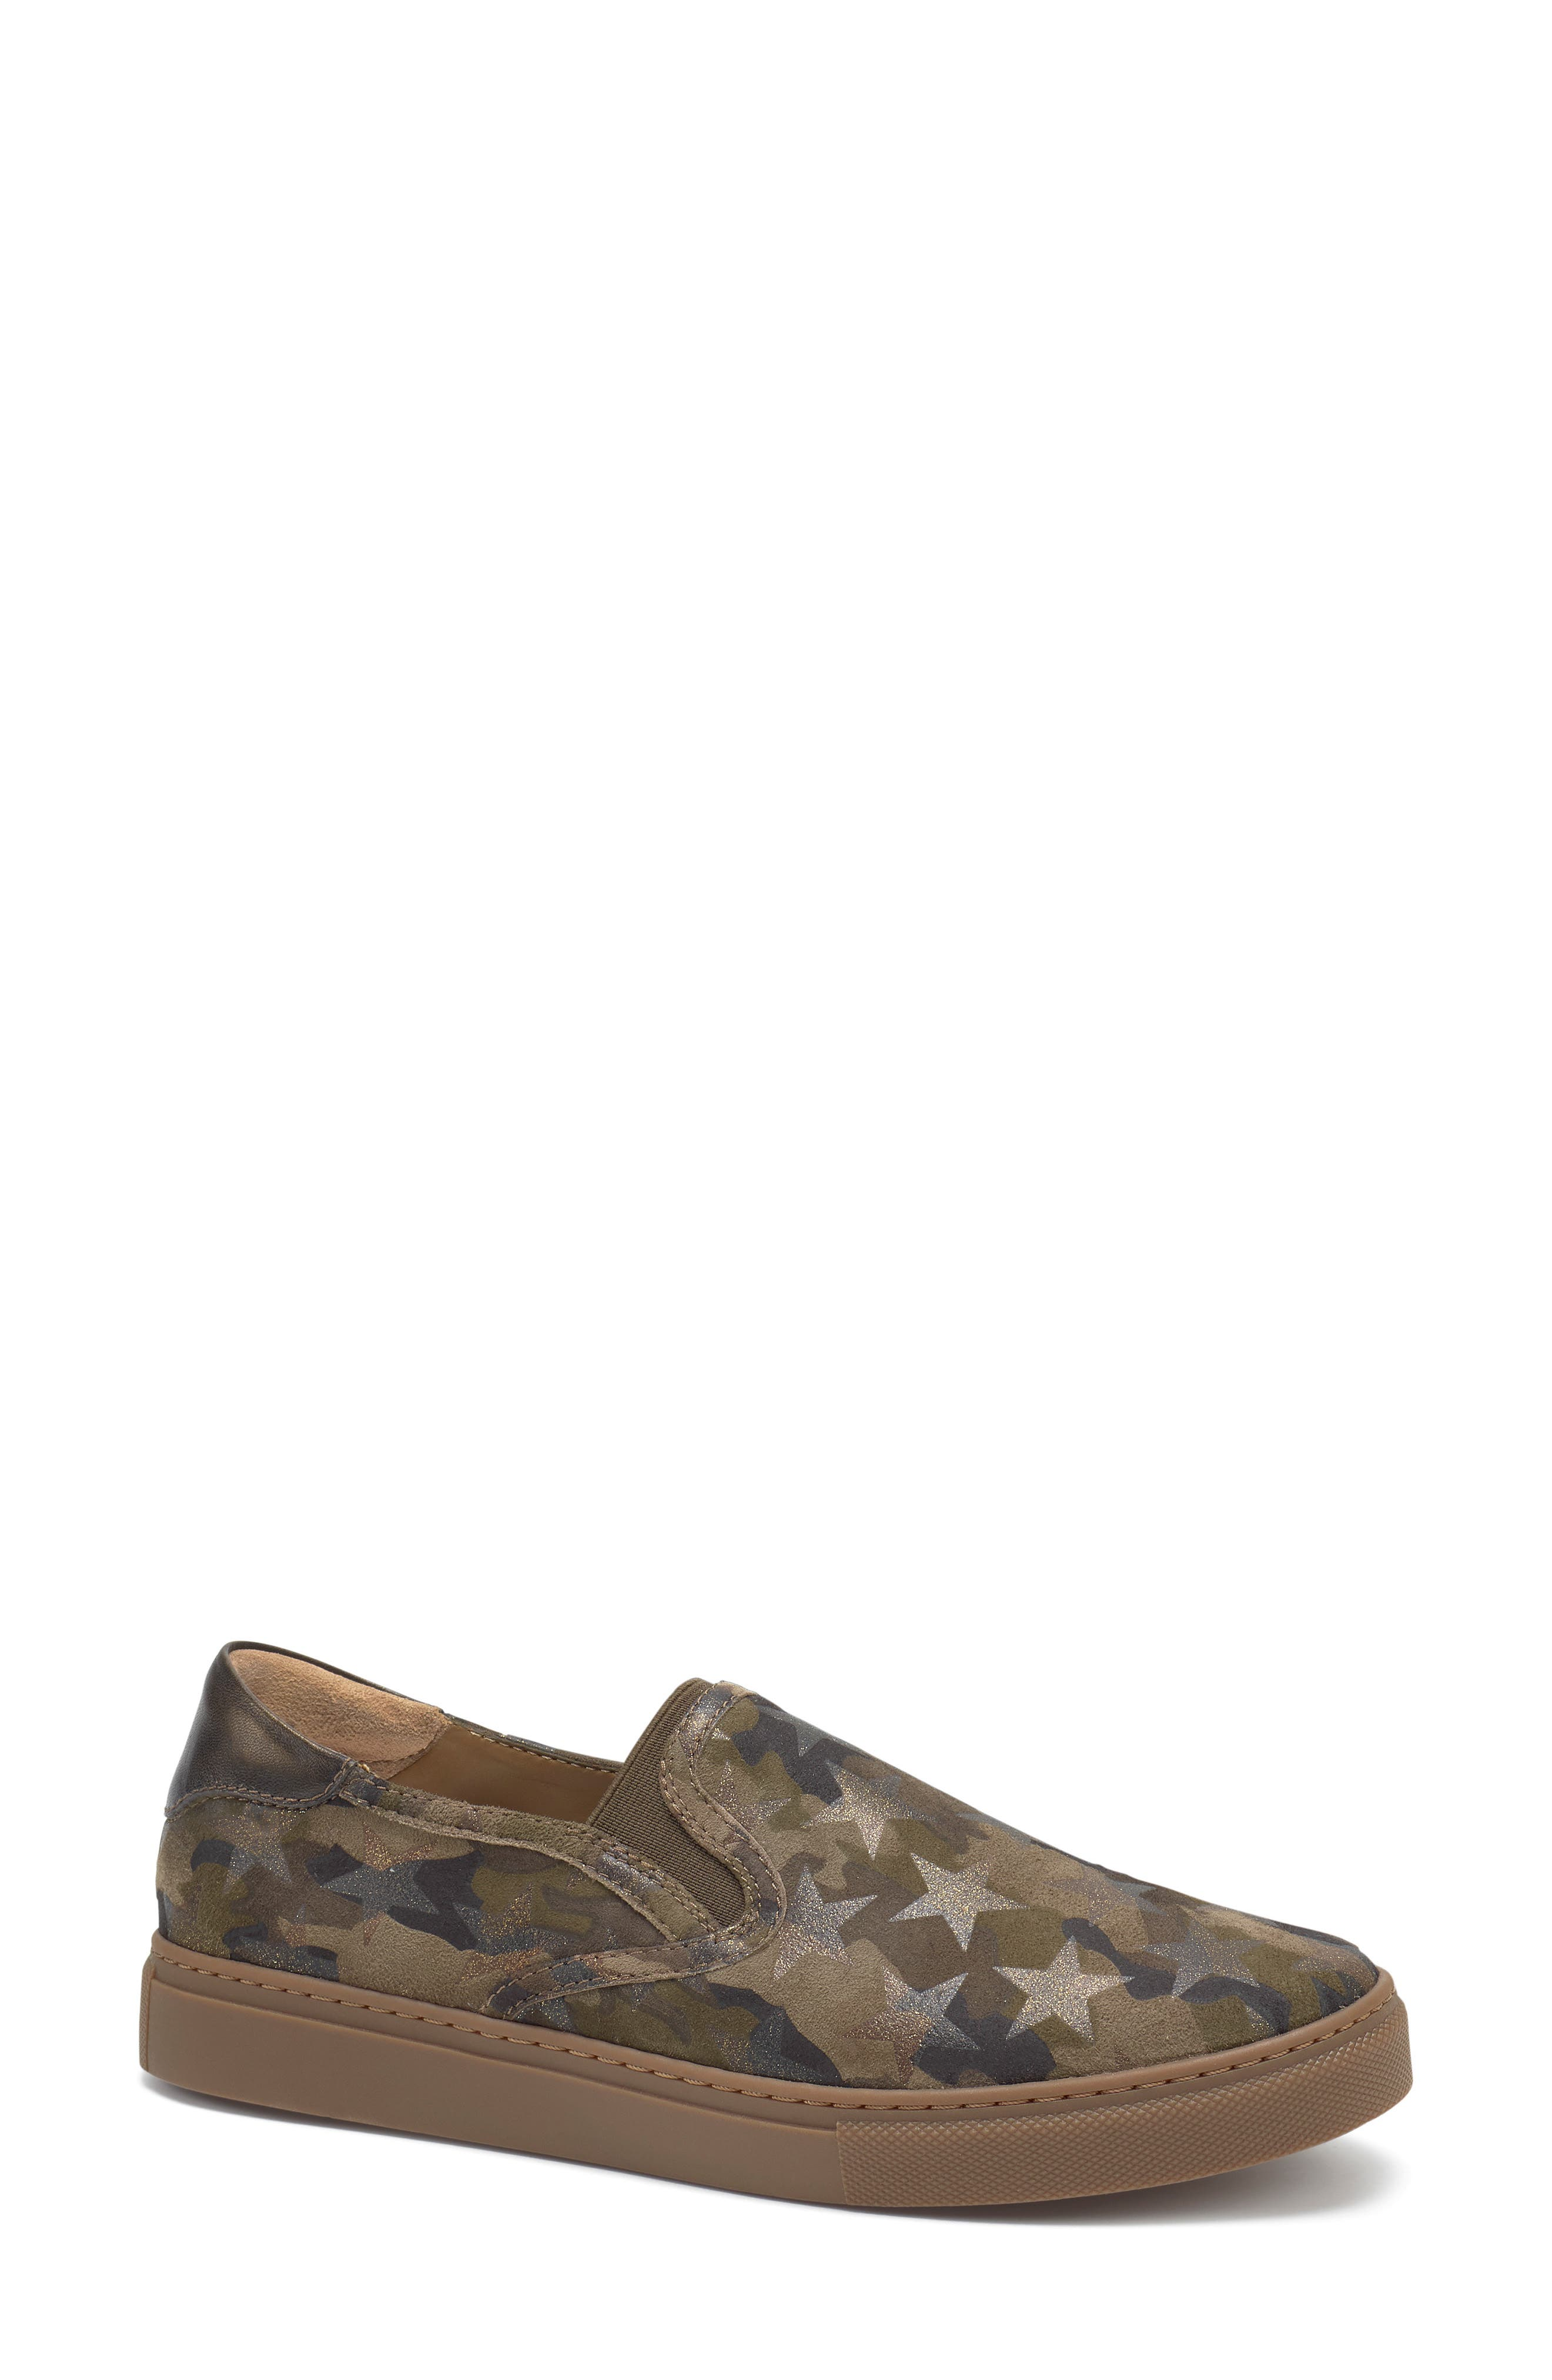 Lillian Water Resistant Slip-On Sneaker,                             Main thumbnail 1, color,                             OLIVE STAR PRINT SUEDE